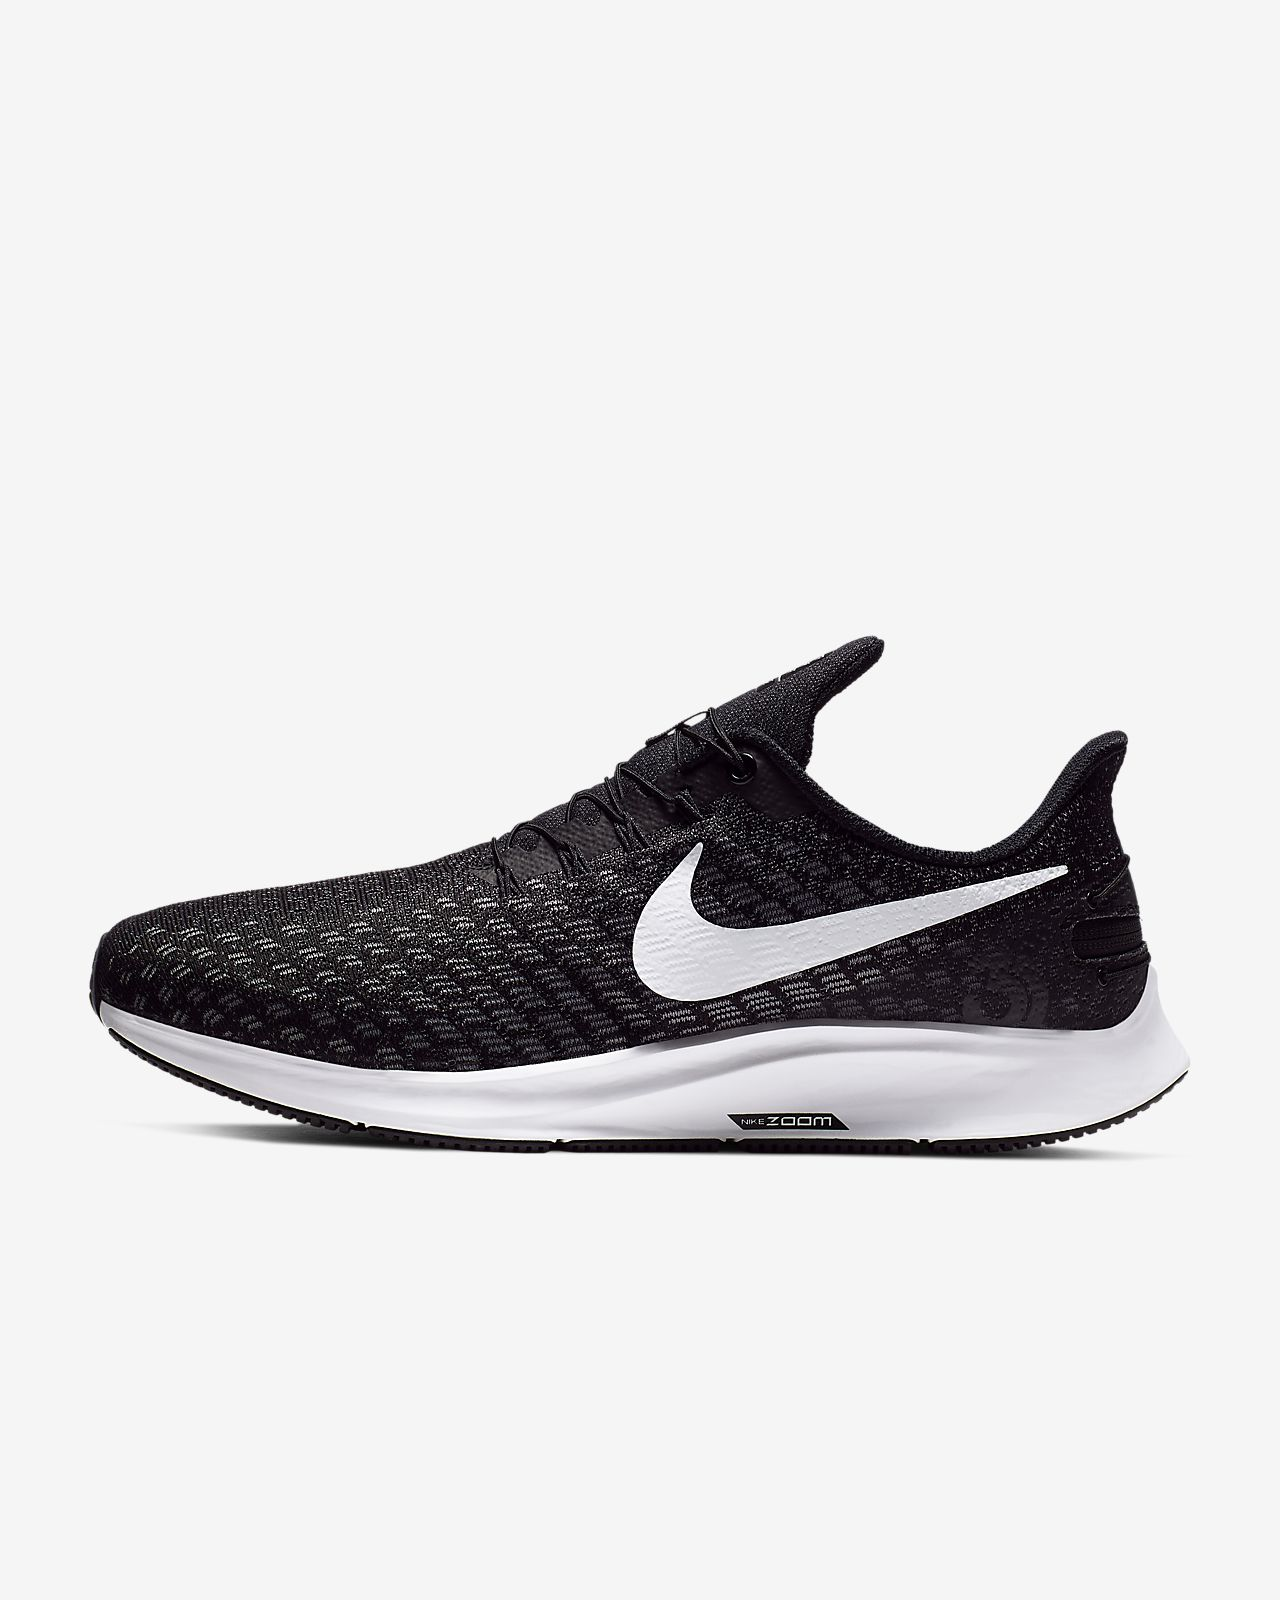 80b70154469 Nike Air Zoom Pegasus 35 FlyEase 4E Men's Running Shoe. Nike.com